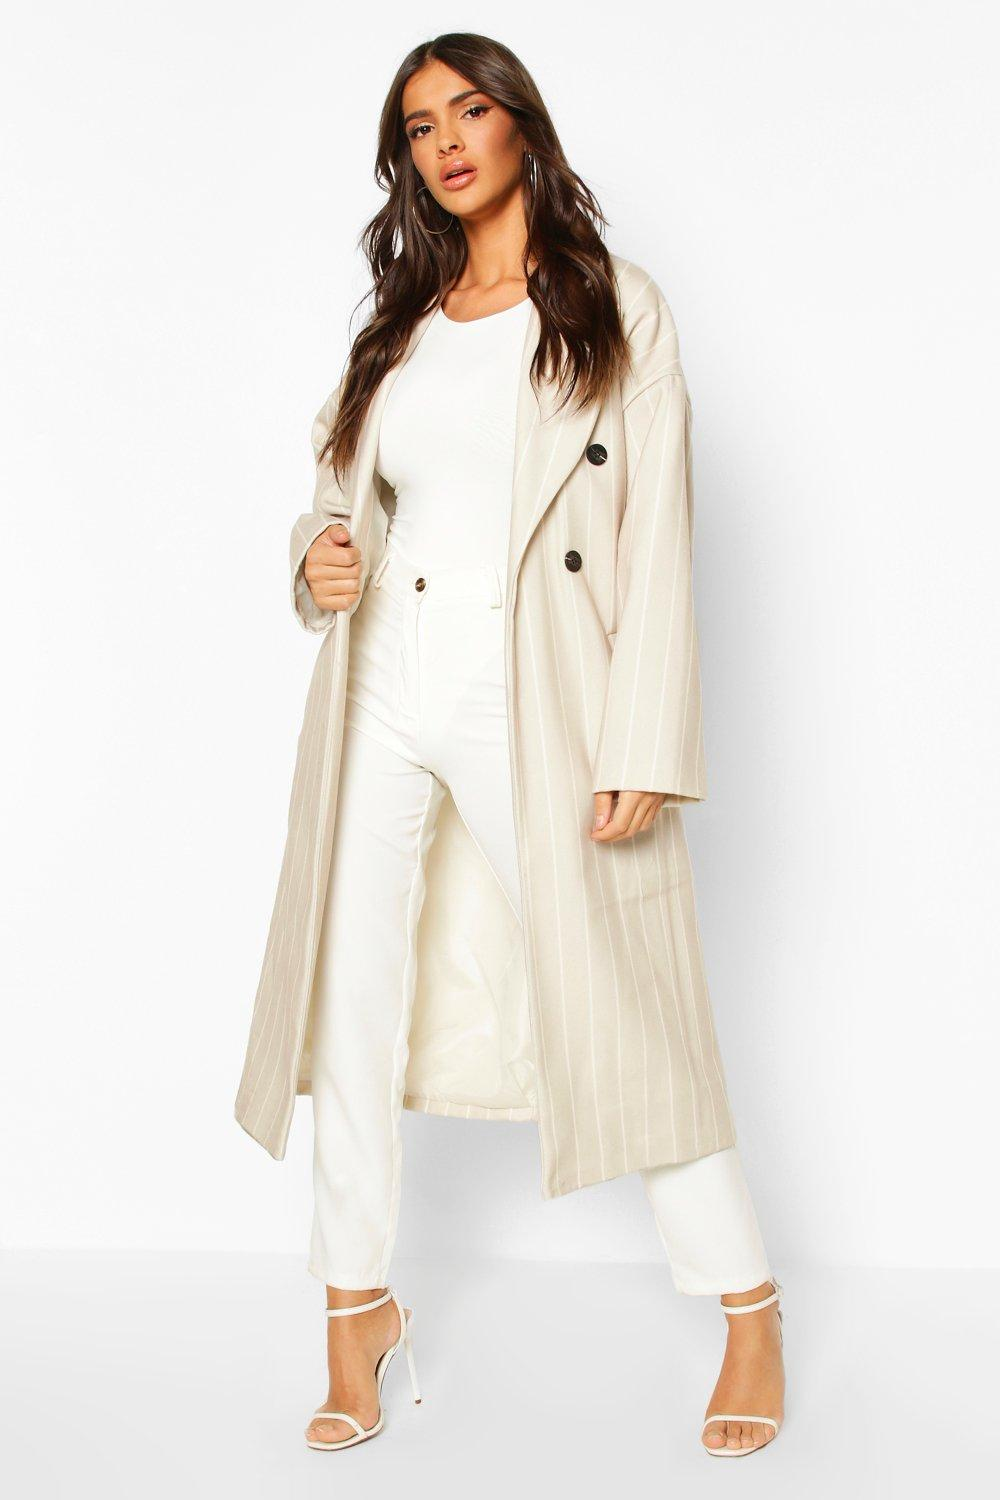 boohoo Womens Stripe Belted Wool Look Longline Coat - Beige - 8, Beige